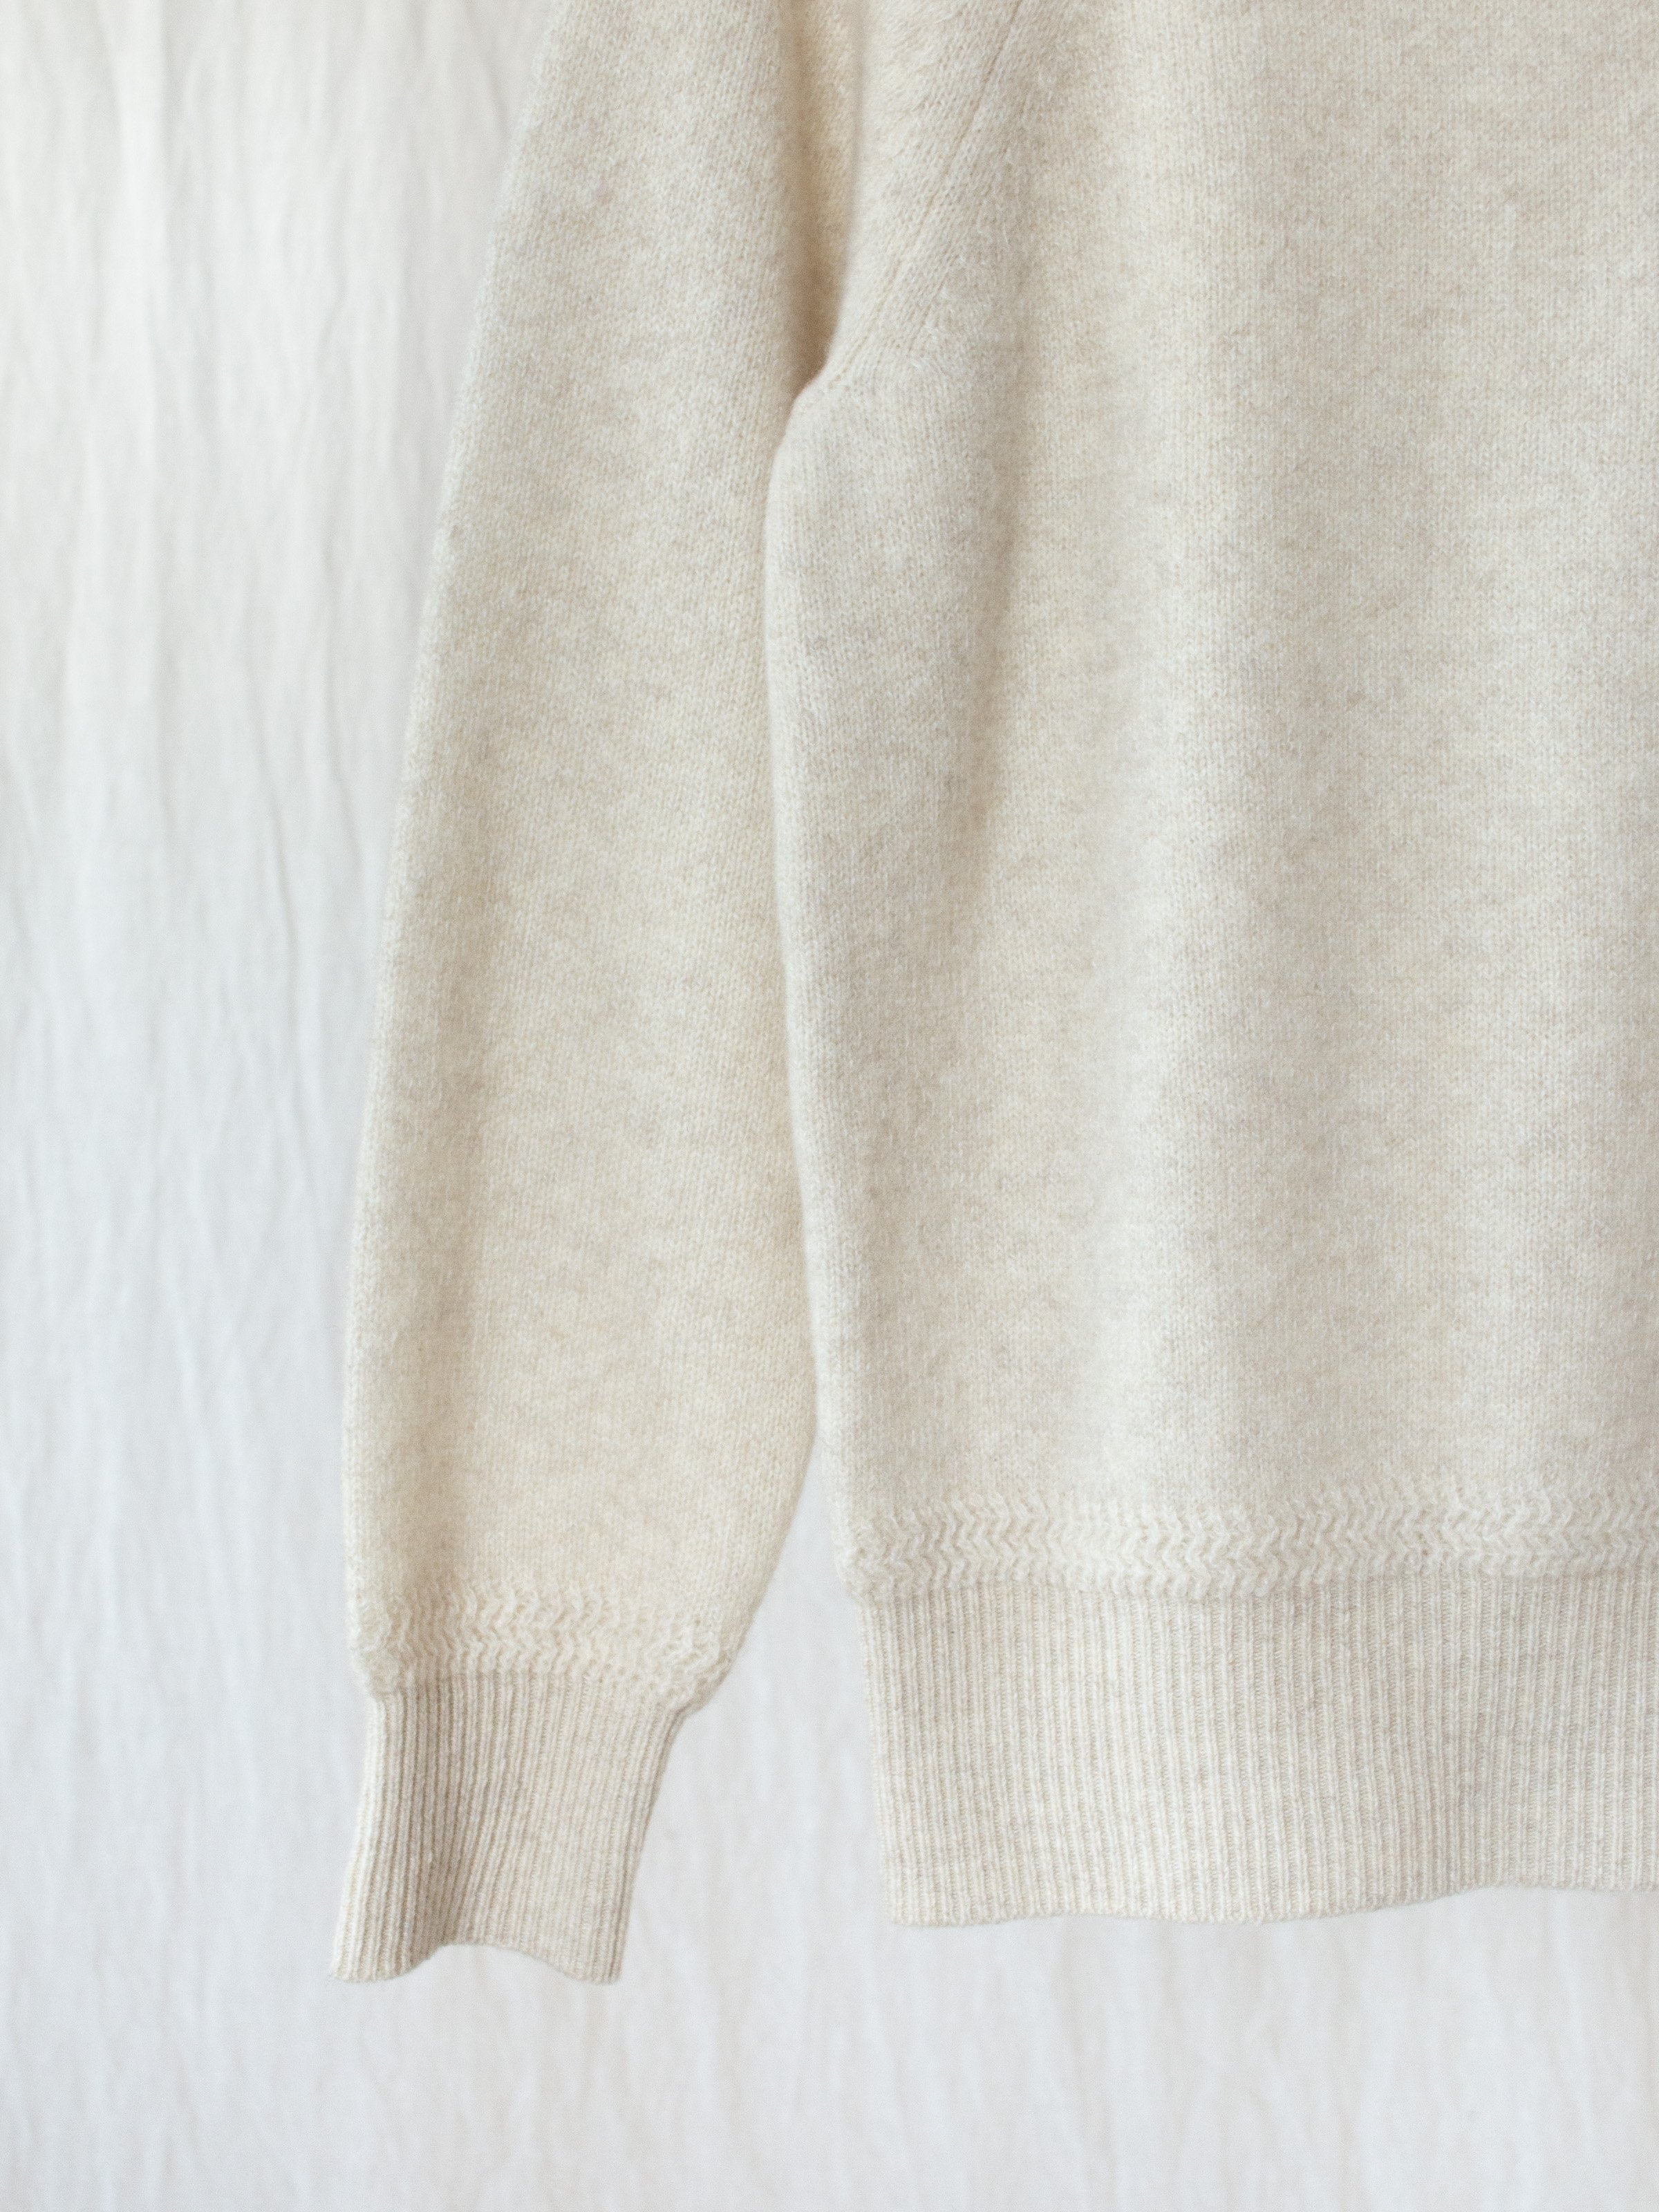 Namu Shop - Phlannel Wool Cashmere Turtleneck - Ivory